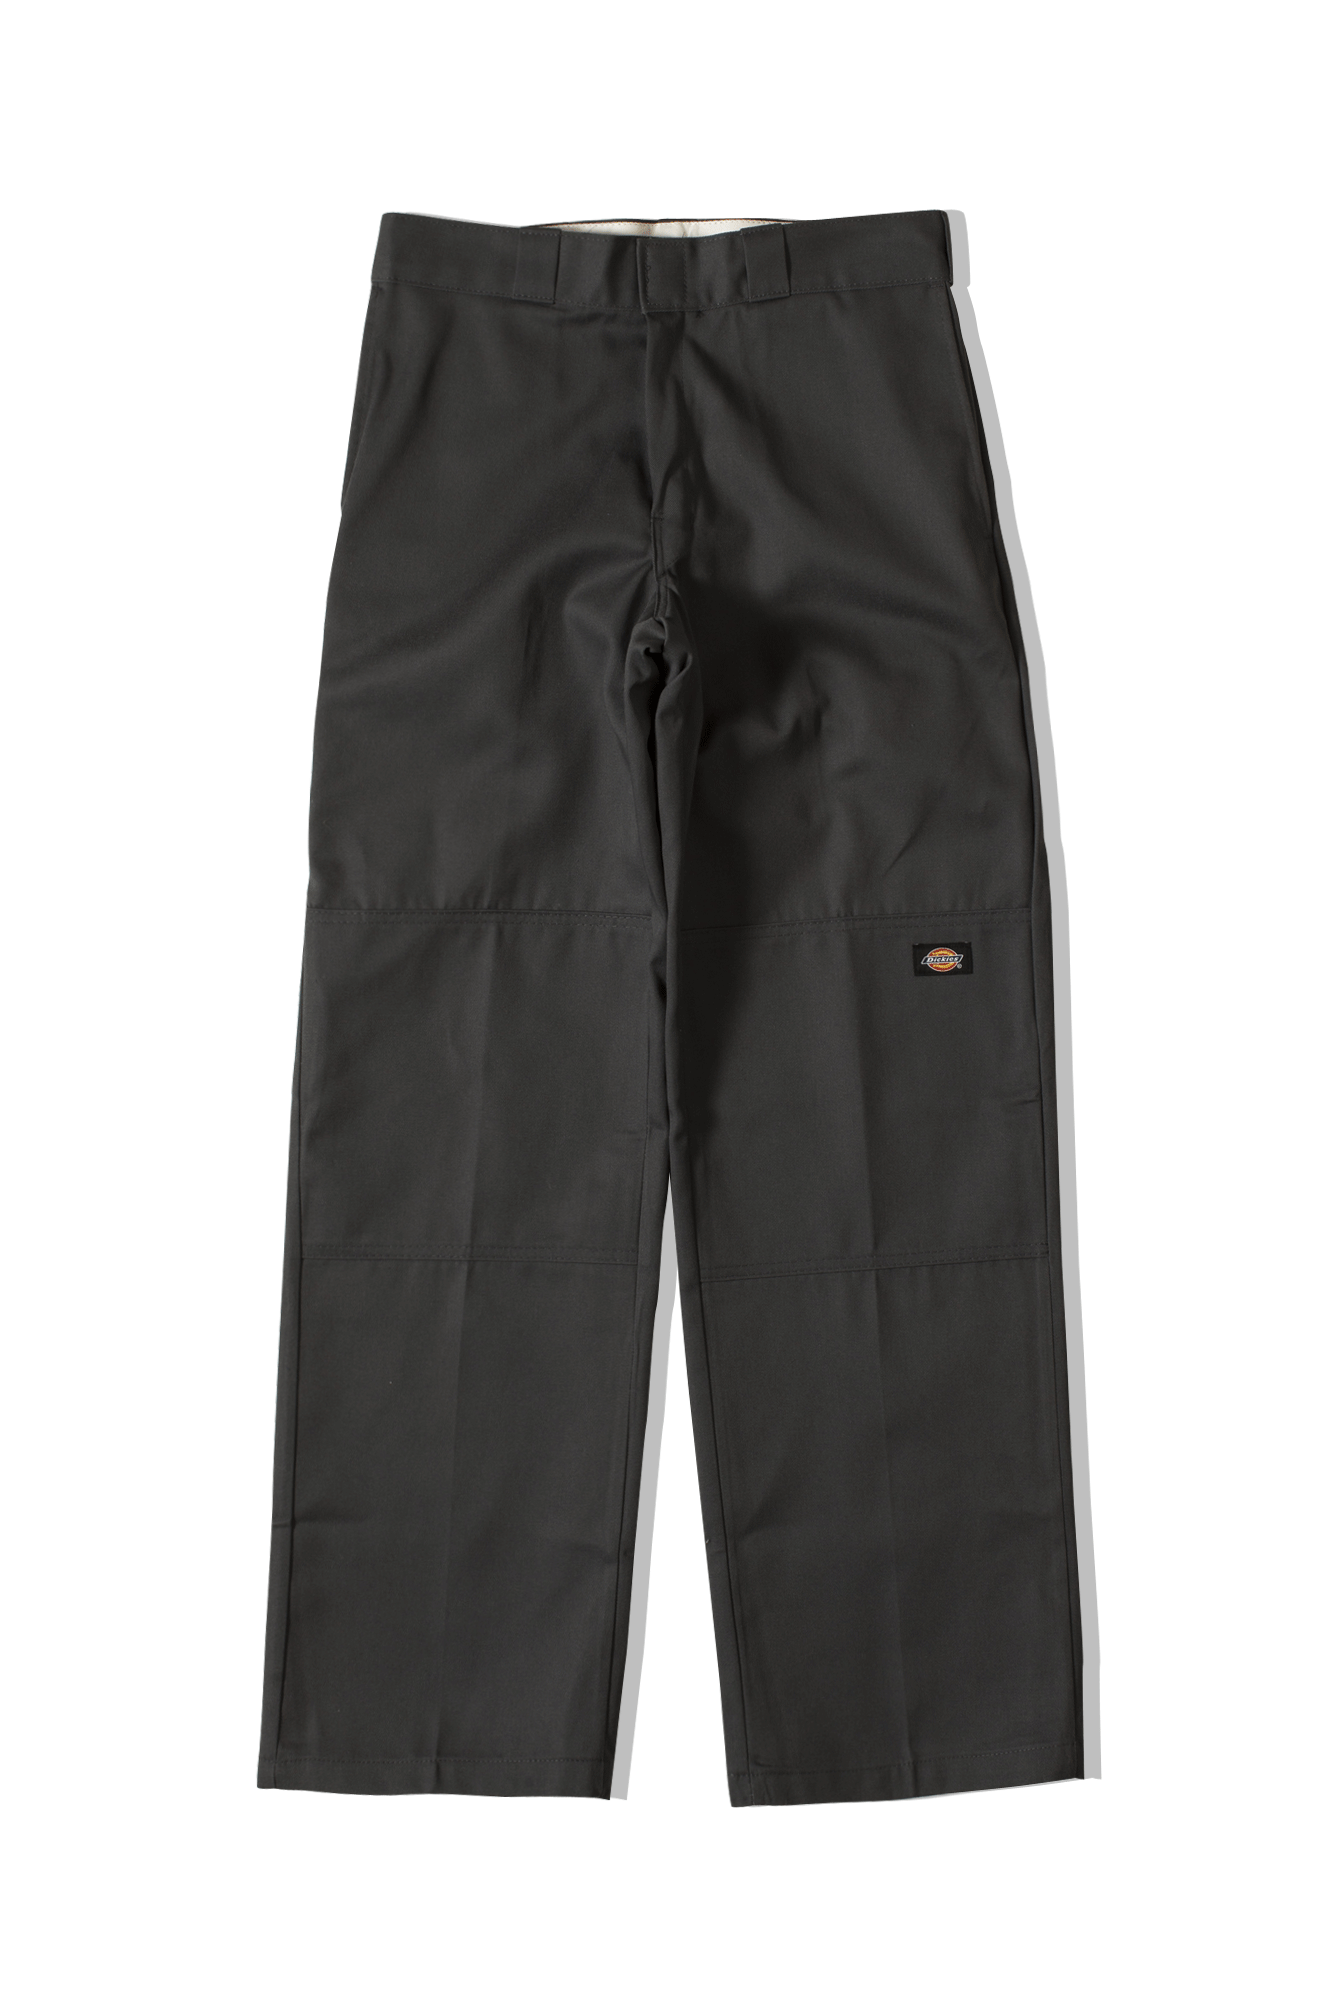 Double Knee Work Pant Grey